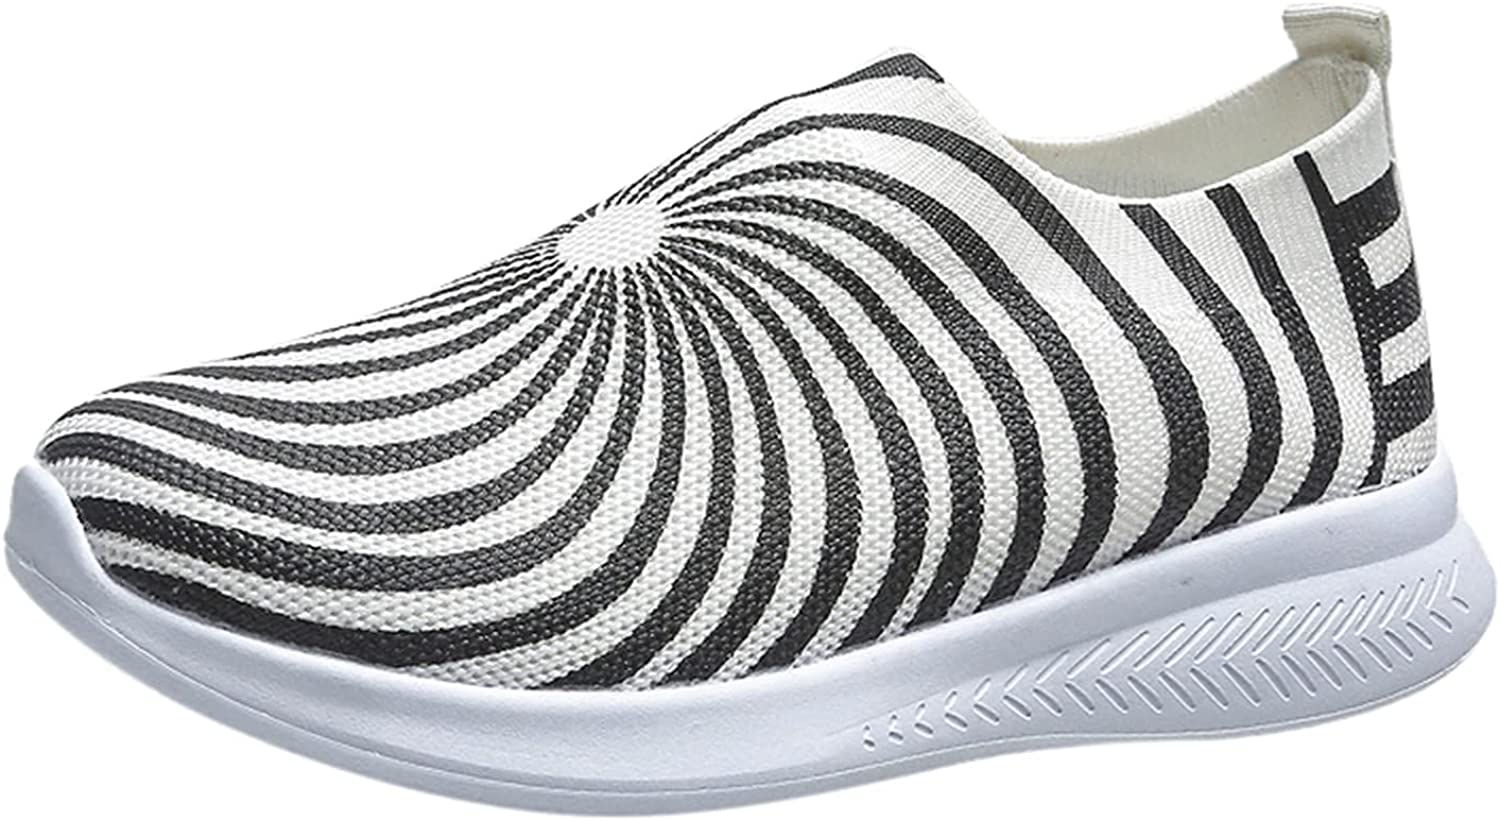 FADK Women's Fashion Sneakers Light Comfortable Breathable Slip-on Running Shoes Casual Shoes